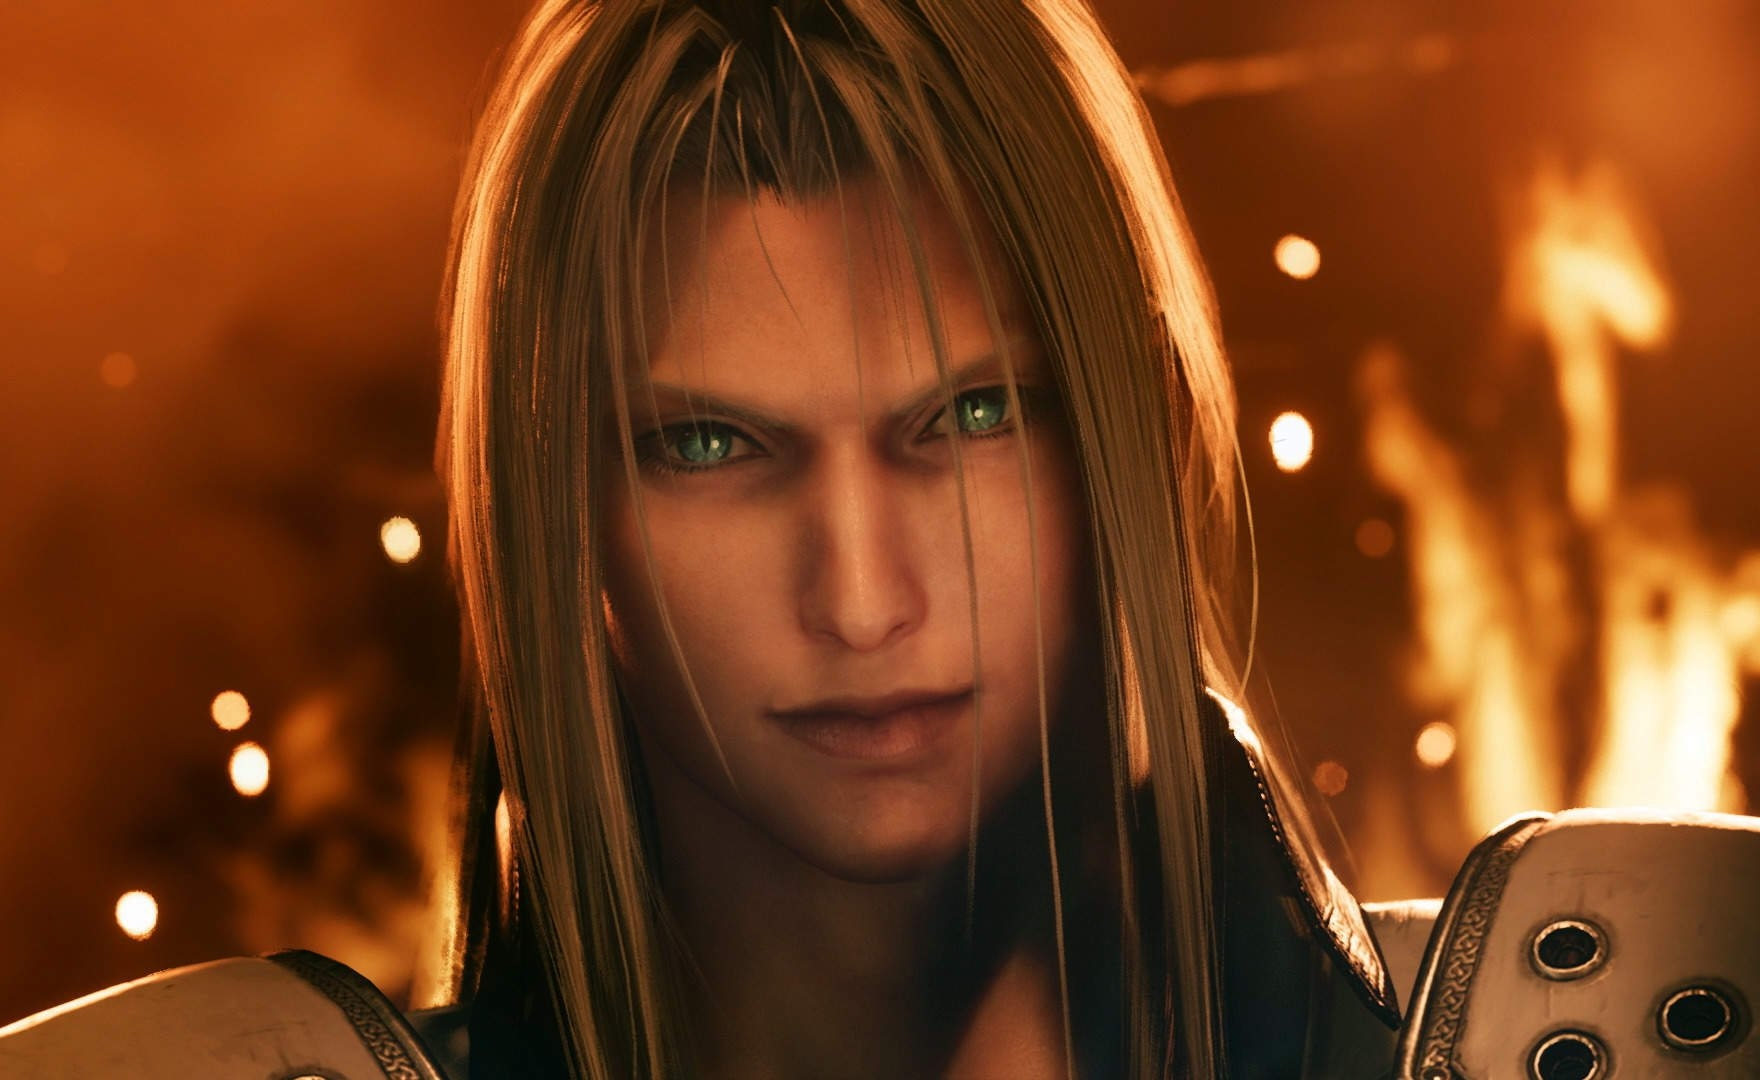 Final Fantasy 7 Remake: allarme Coronavirus, Square Enix cancella un evento